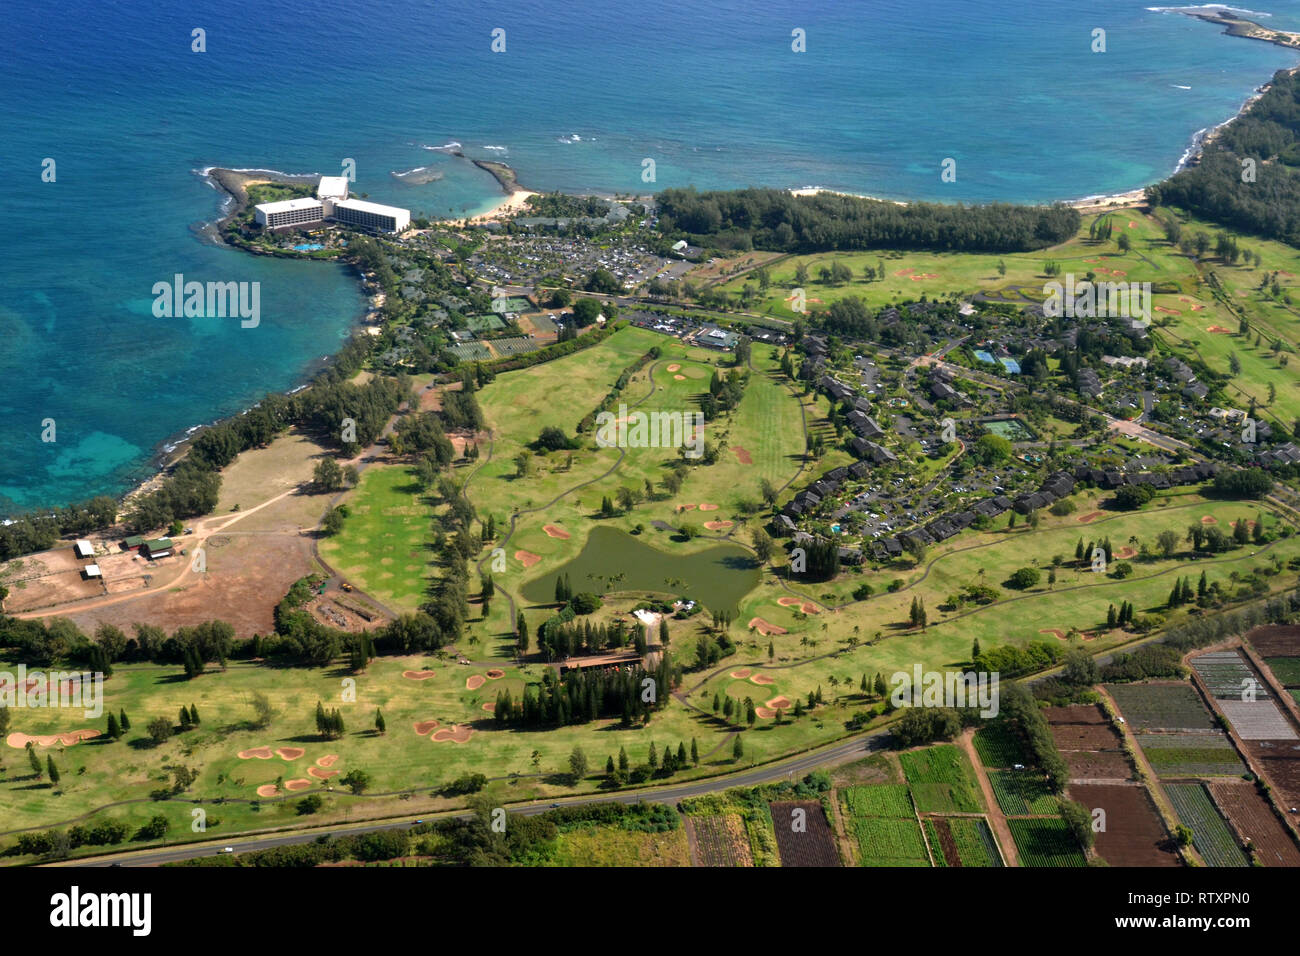 Aerial view of Turtle Bay Resort in the North Shore of Oahu, Hawaii, USA - Stock Image